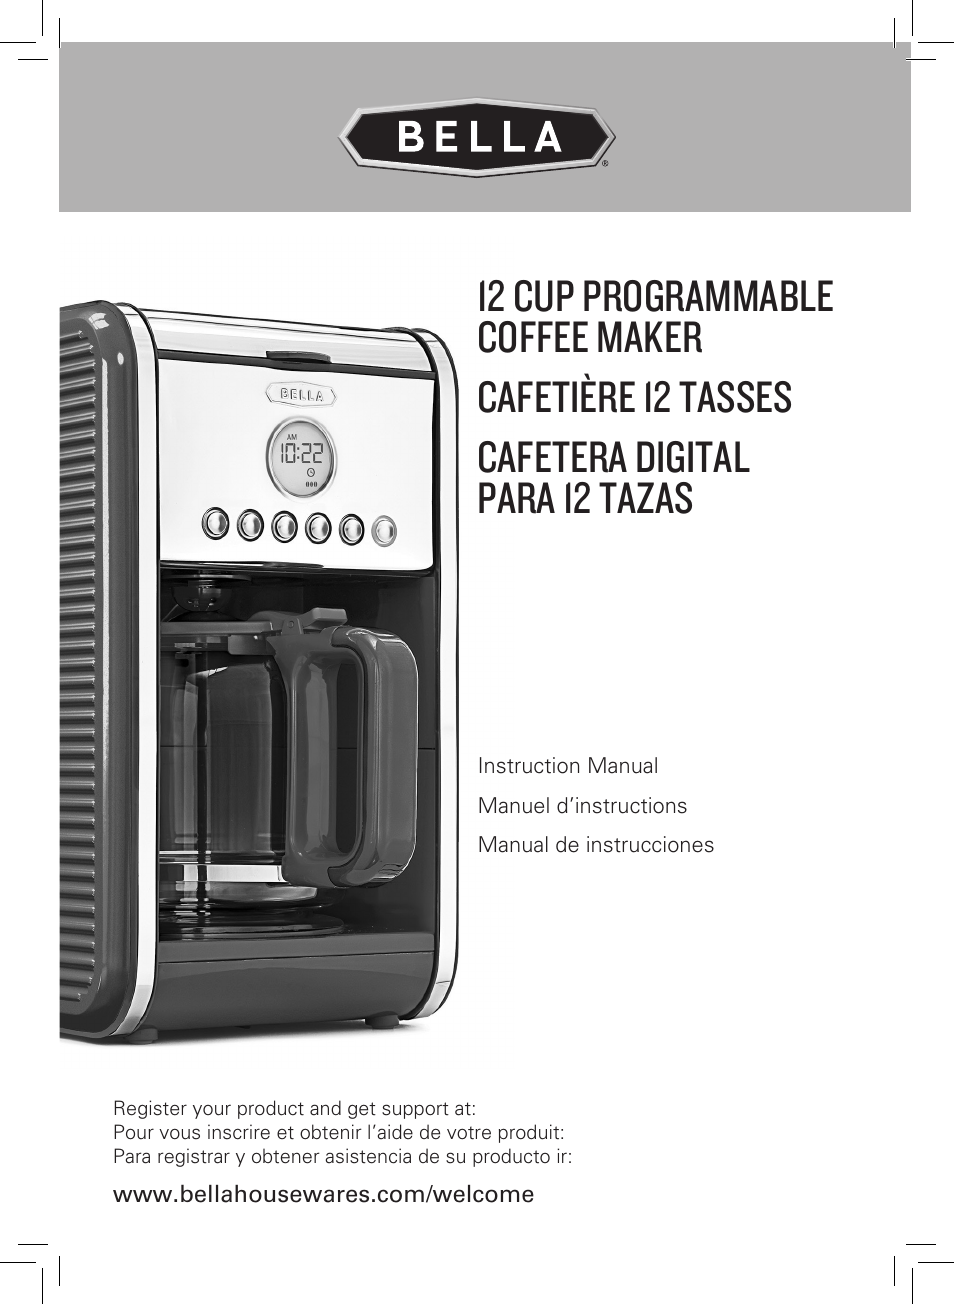 Bella Programmable Coffee Maker Manual : BELLA 14108 Linea Collection 12-Cup Programmable Coffee Maker User Manual 32 pages